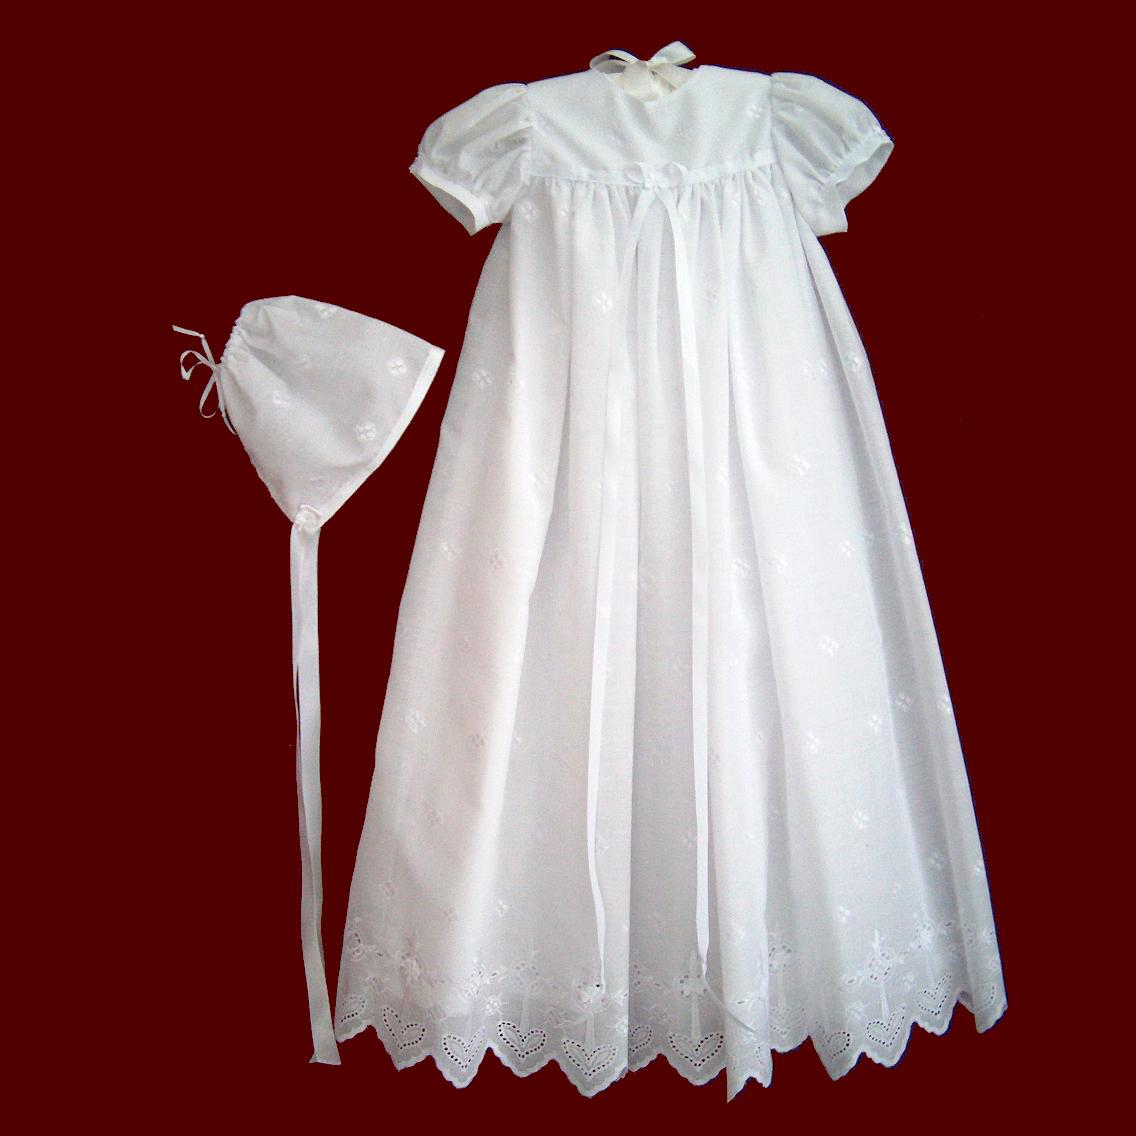 Cotton Embroidered Crosses With Shamrocks Christening Gown